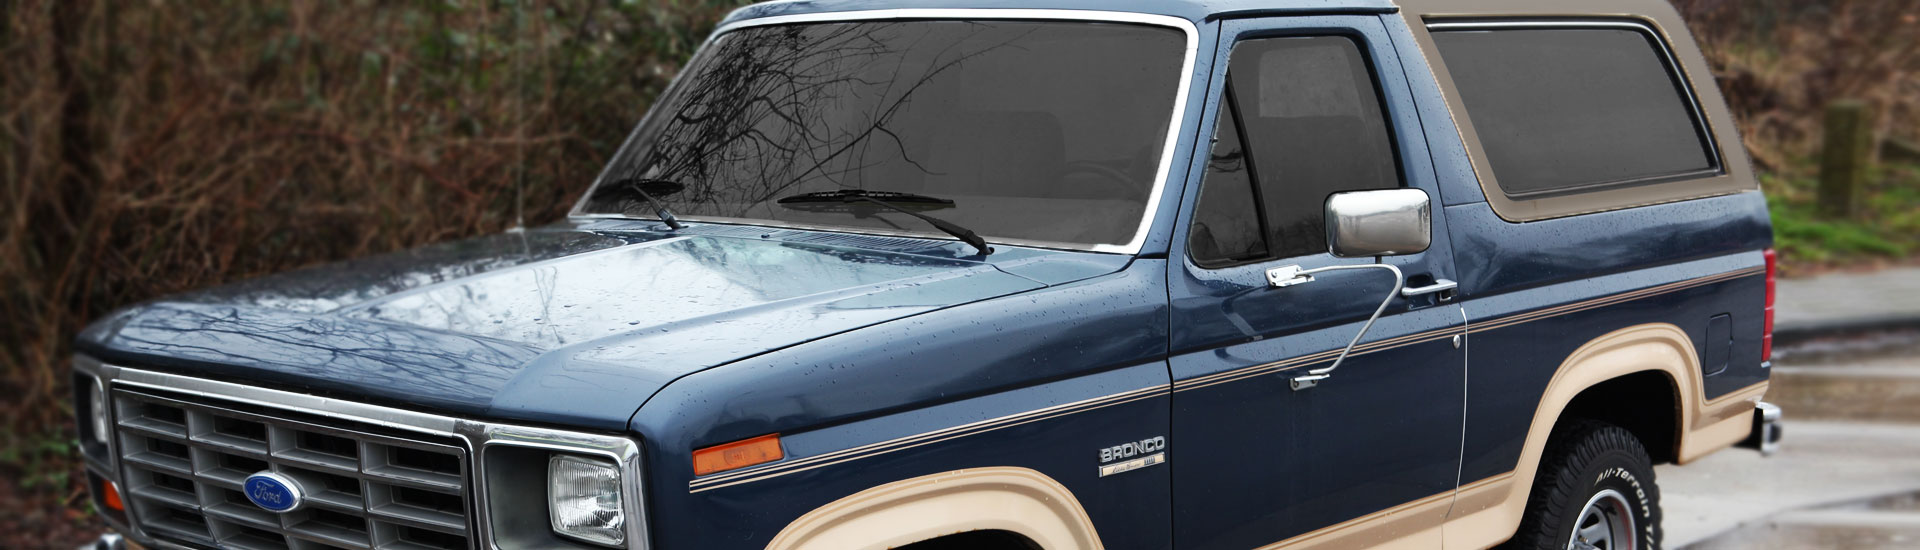 Ford Bronco Window Tint